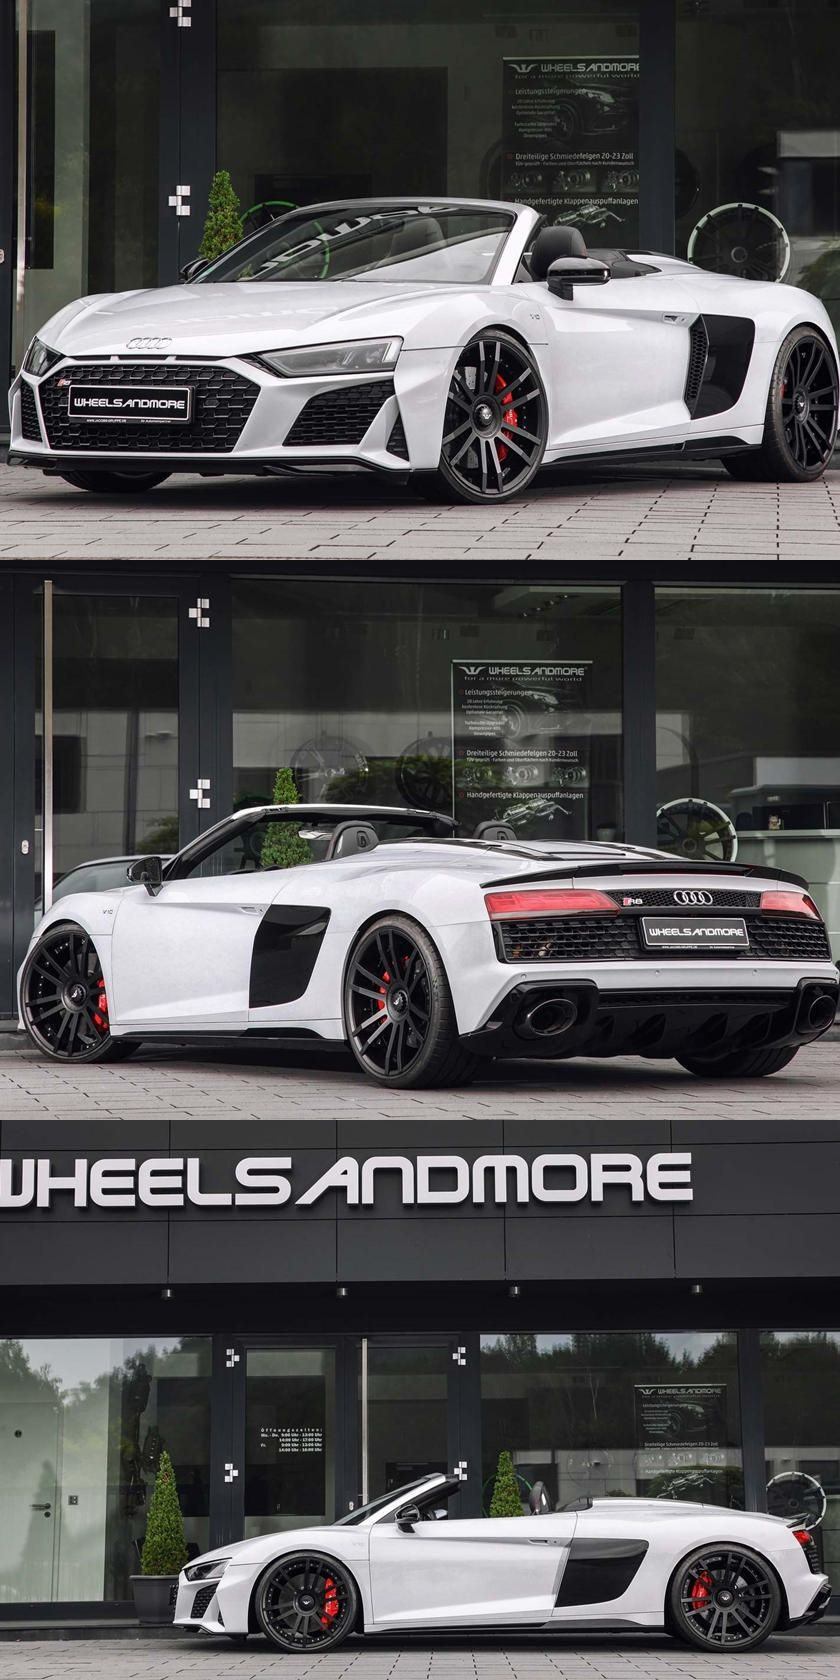 This Audi R8 V10 Spyder Has Almost Double The Horsepower 0 62 Mph Now Takes Just 2 7 Seconds In 2020 Audi R8 V10 Audi R8 Convertible Audi R8